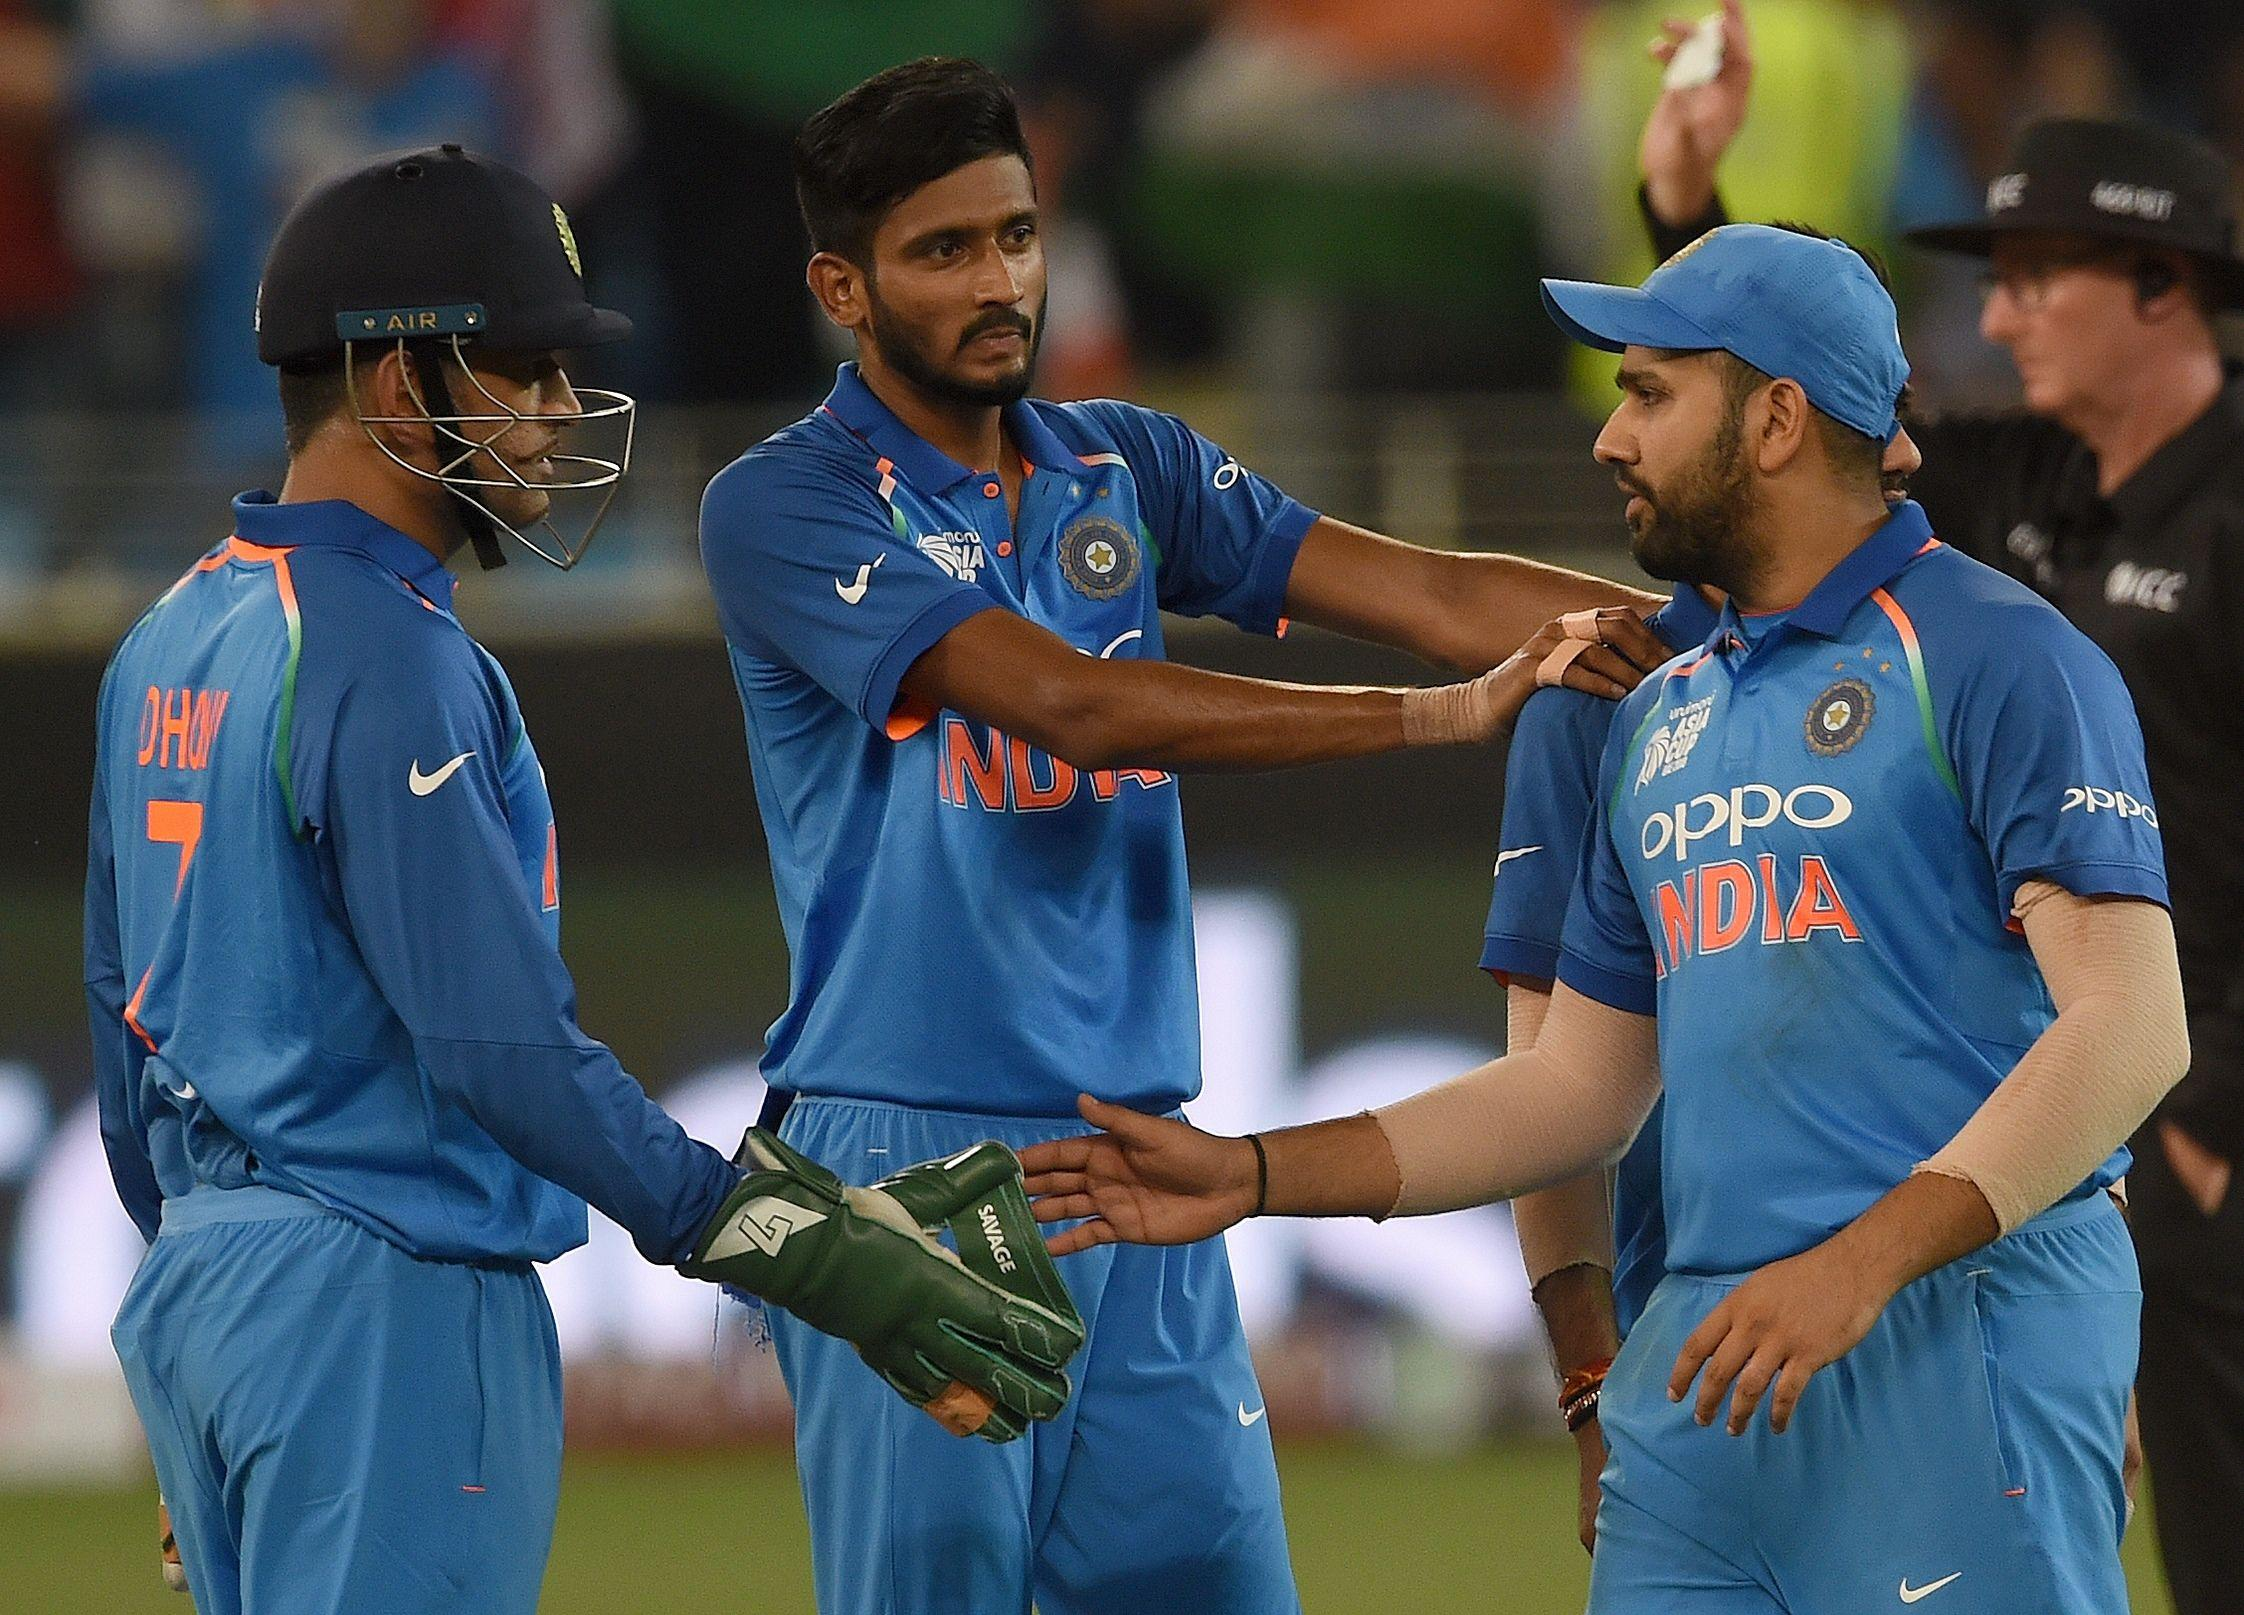 India are one game away from retaining the Asia Cup